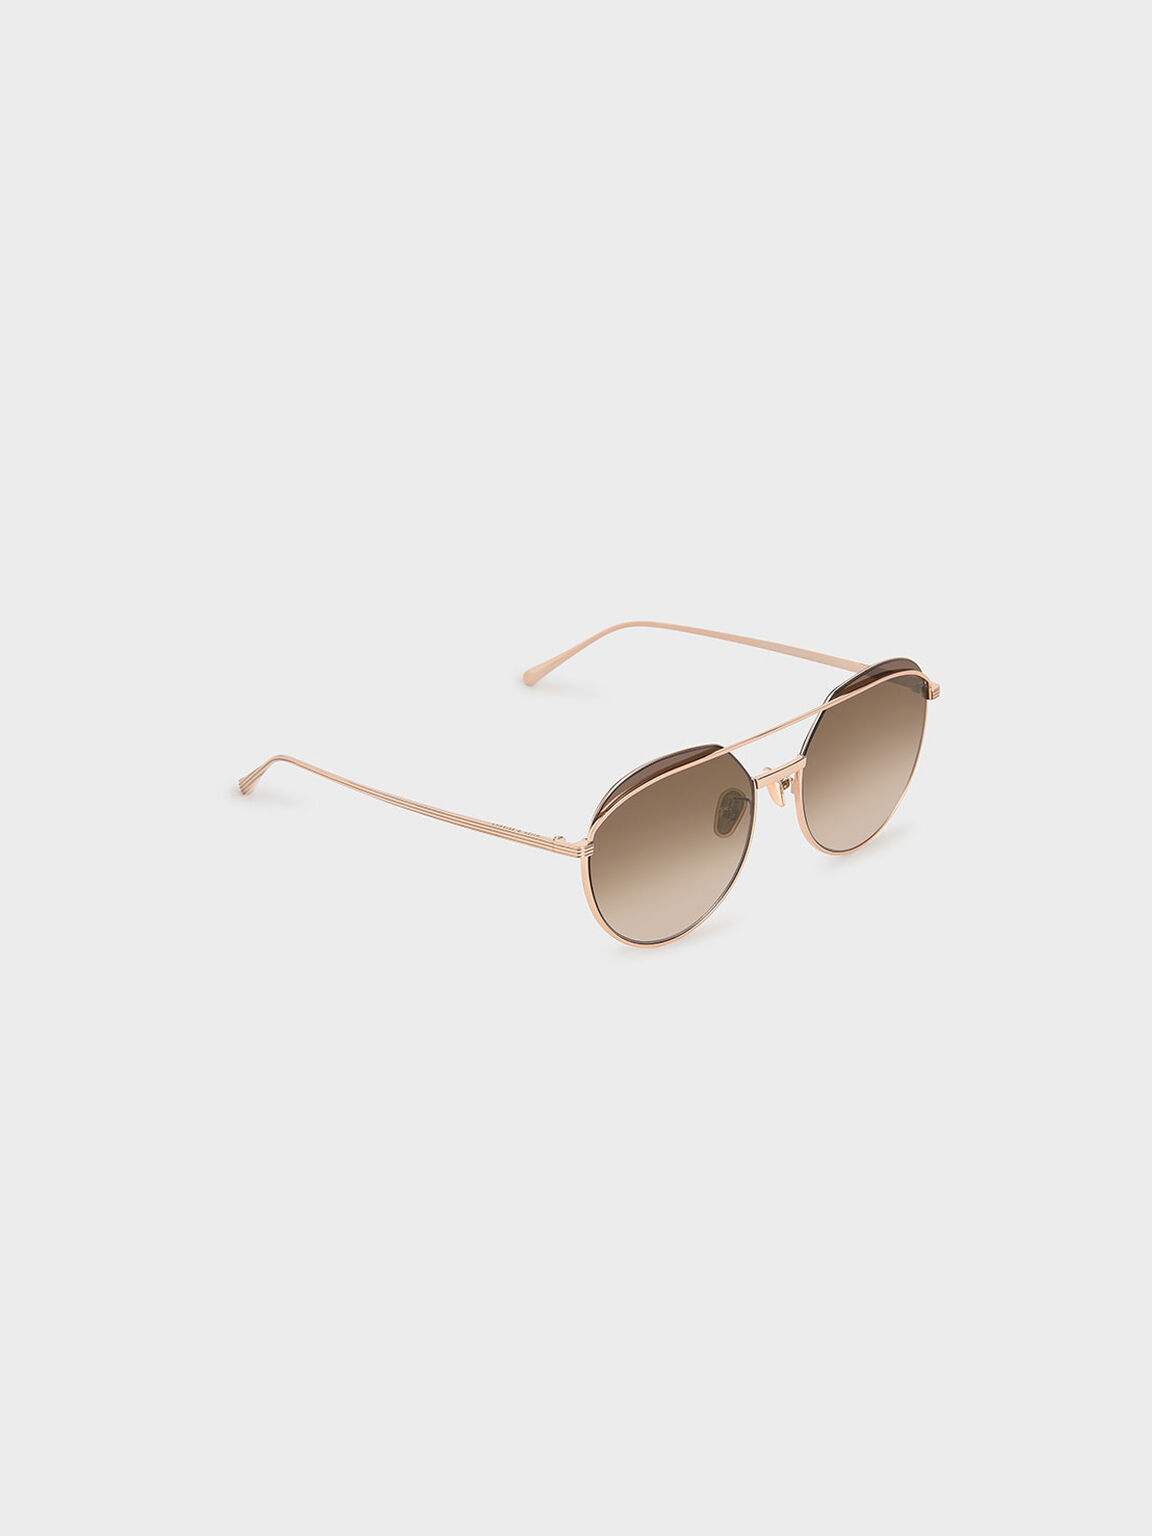 Double Bridge Wireframe Aviator Sunglasses, Rose Gold, hi-res